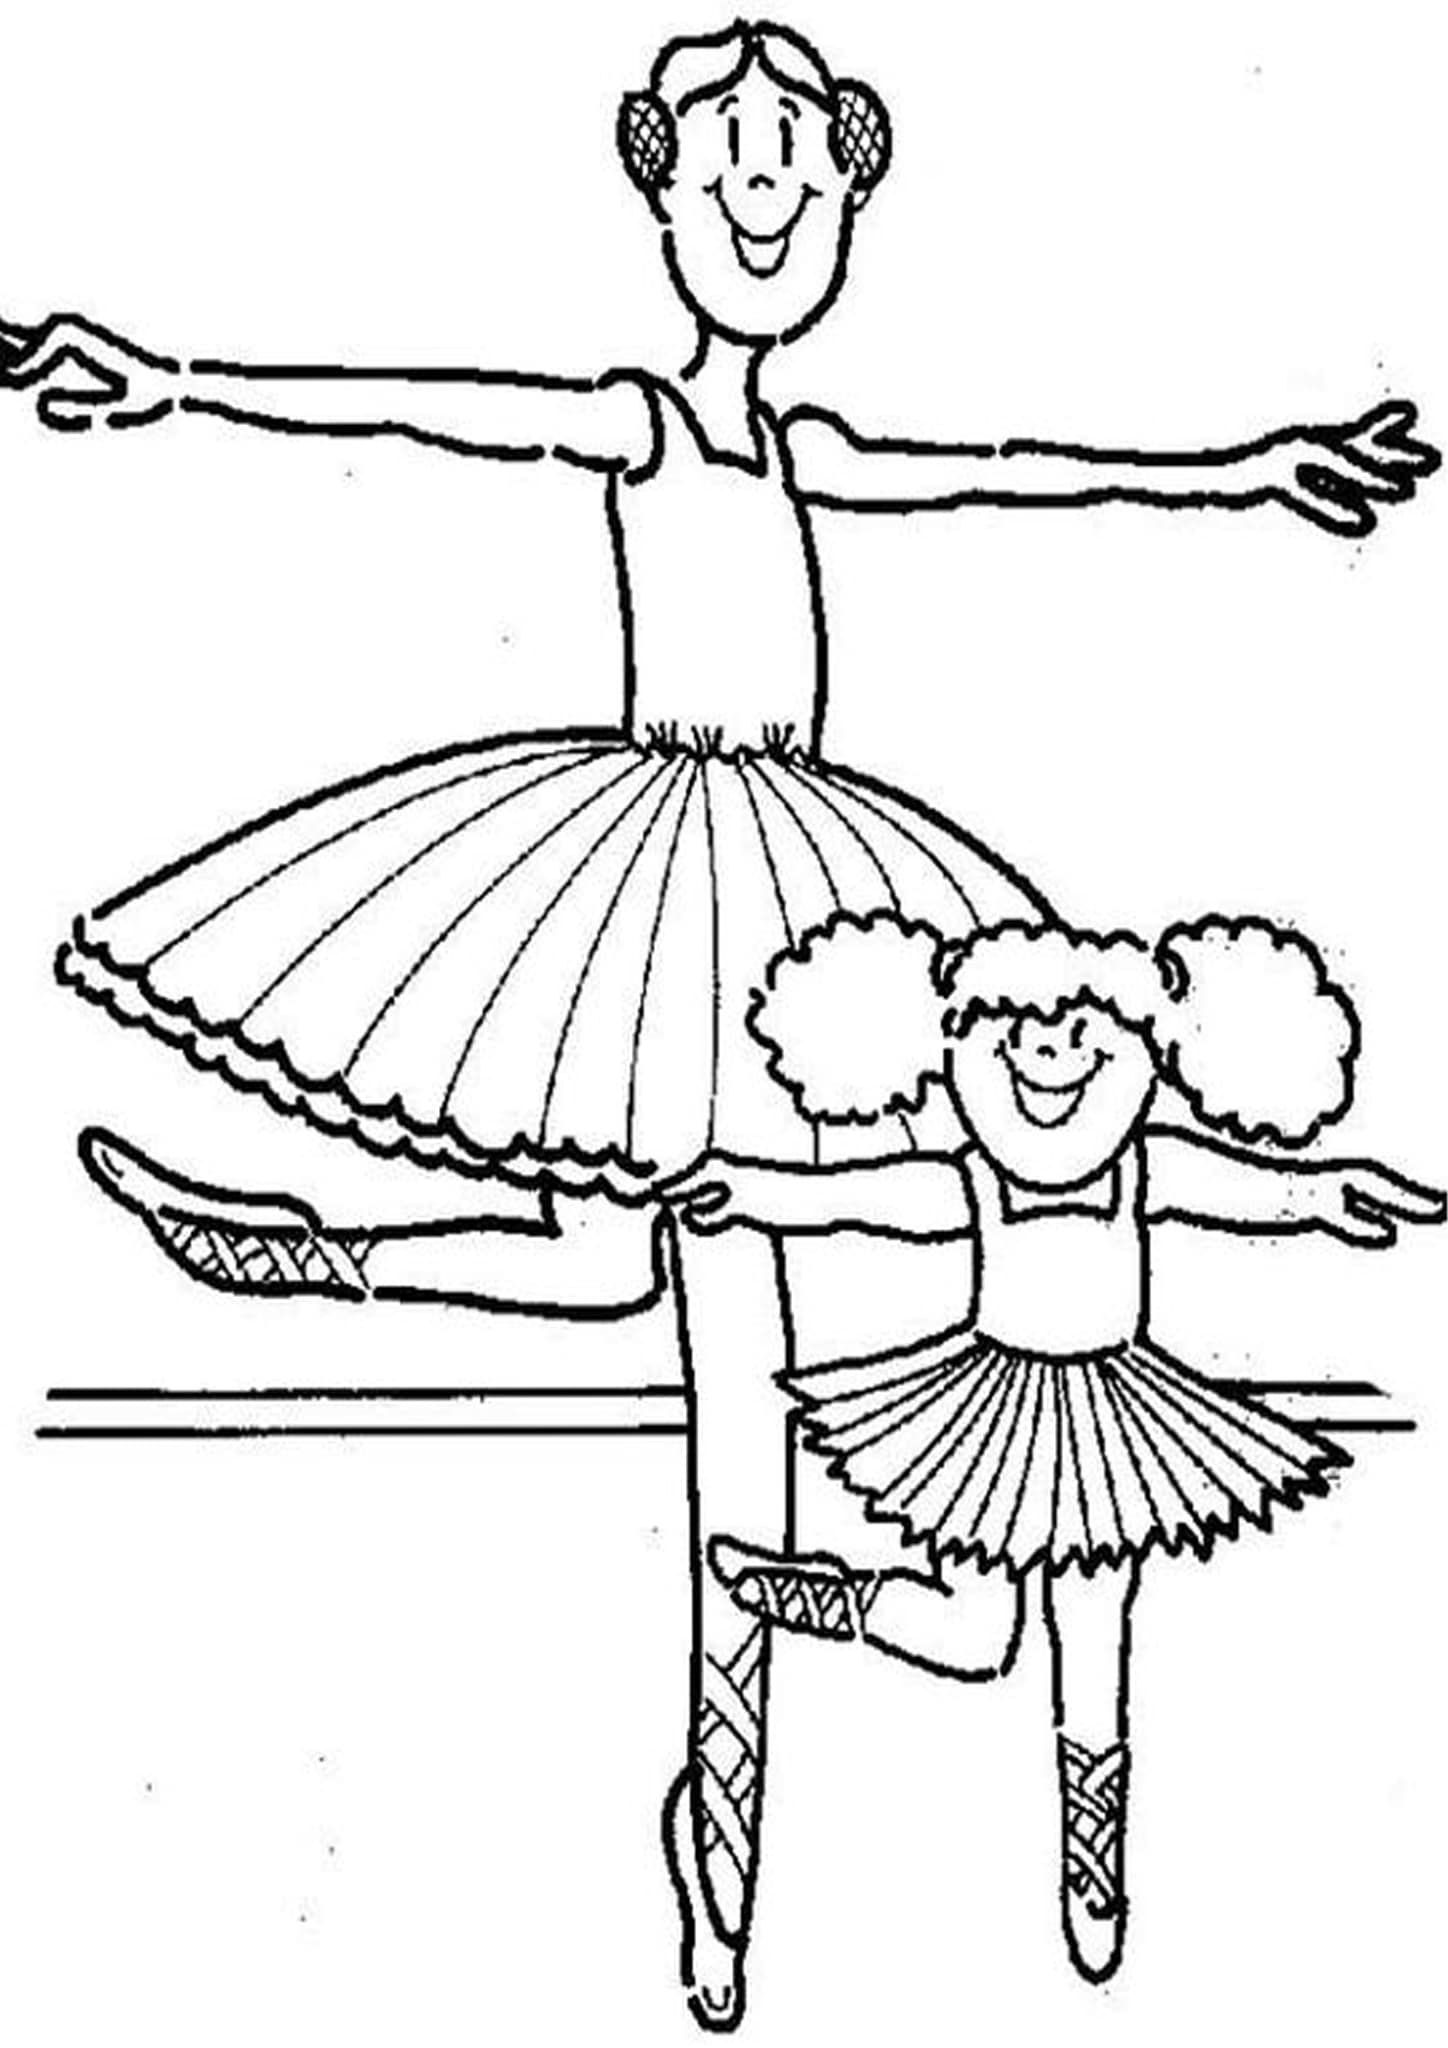 Free Easy To Print Ballerina Coloring Pages In 2020 Coloring Pages Ballerina Coloring Pages Cute Coloring Pages